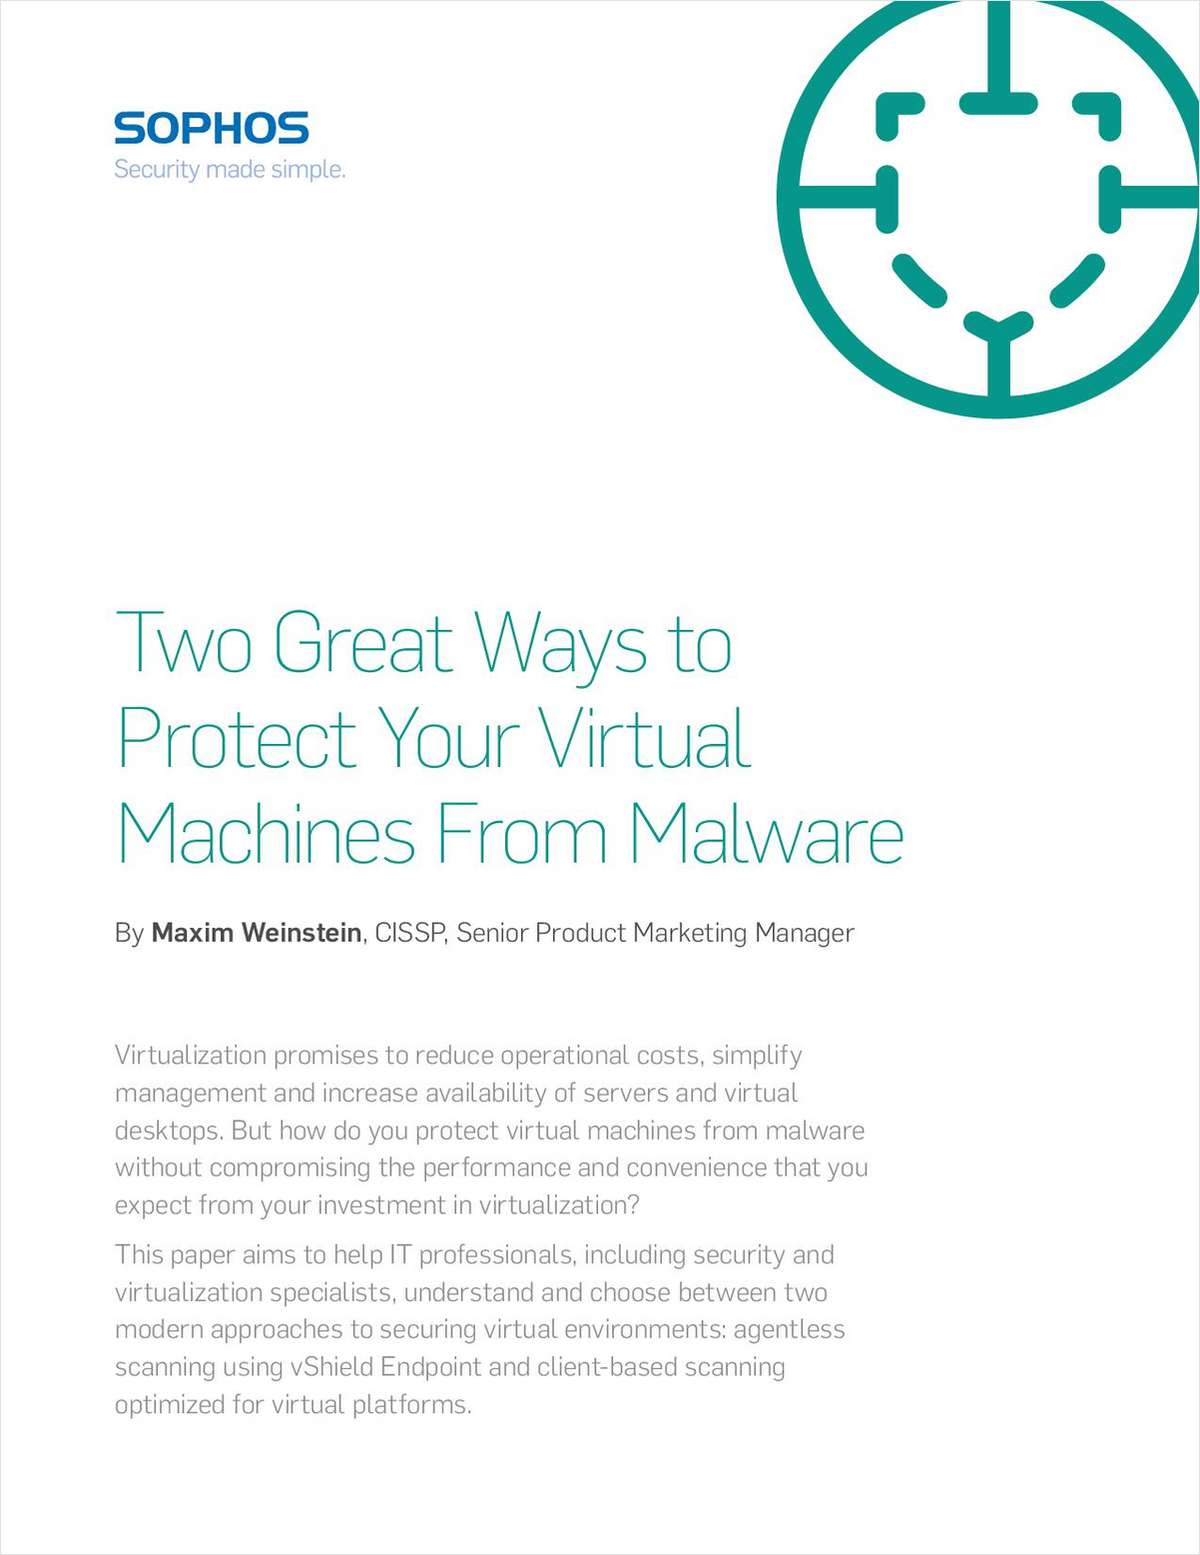 Two Great Ways to Protect Virtual Machines From Malware